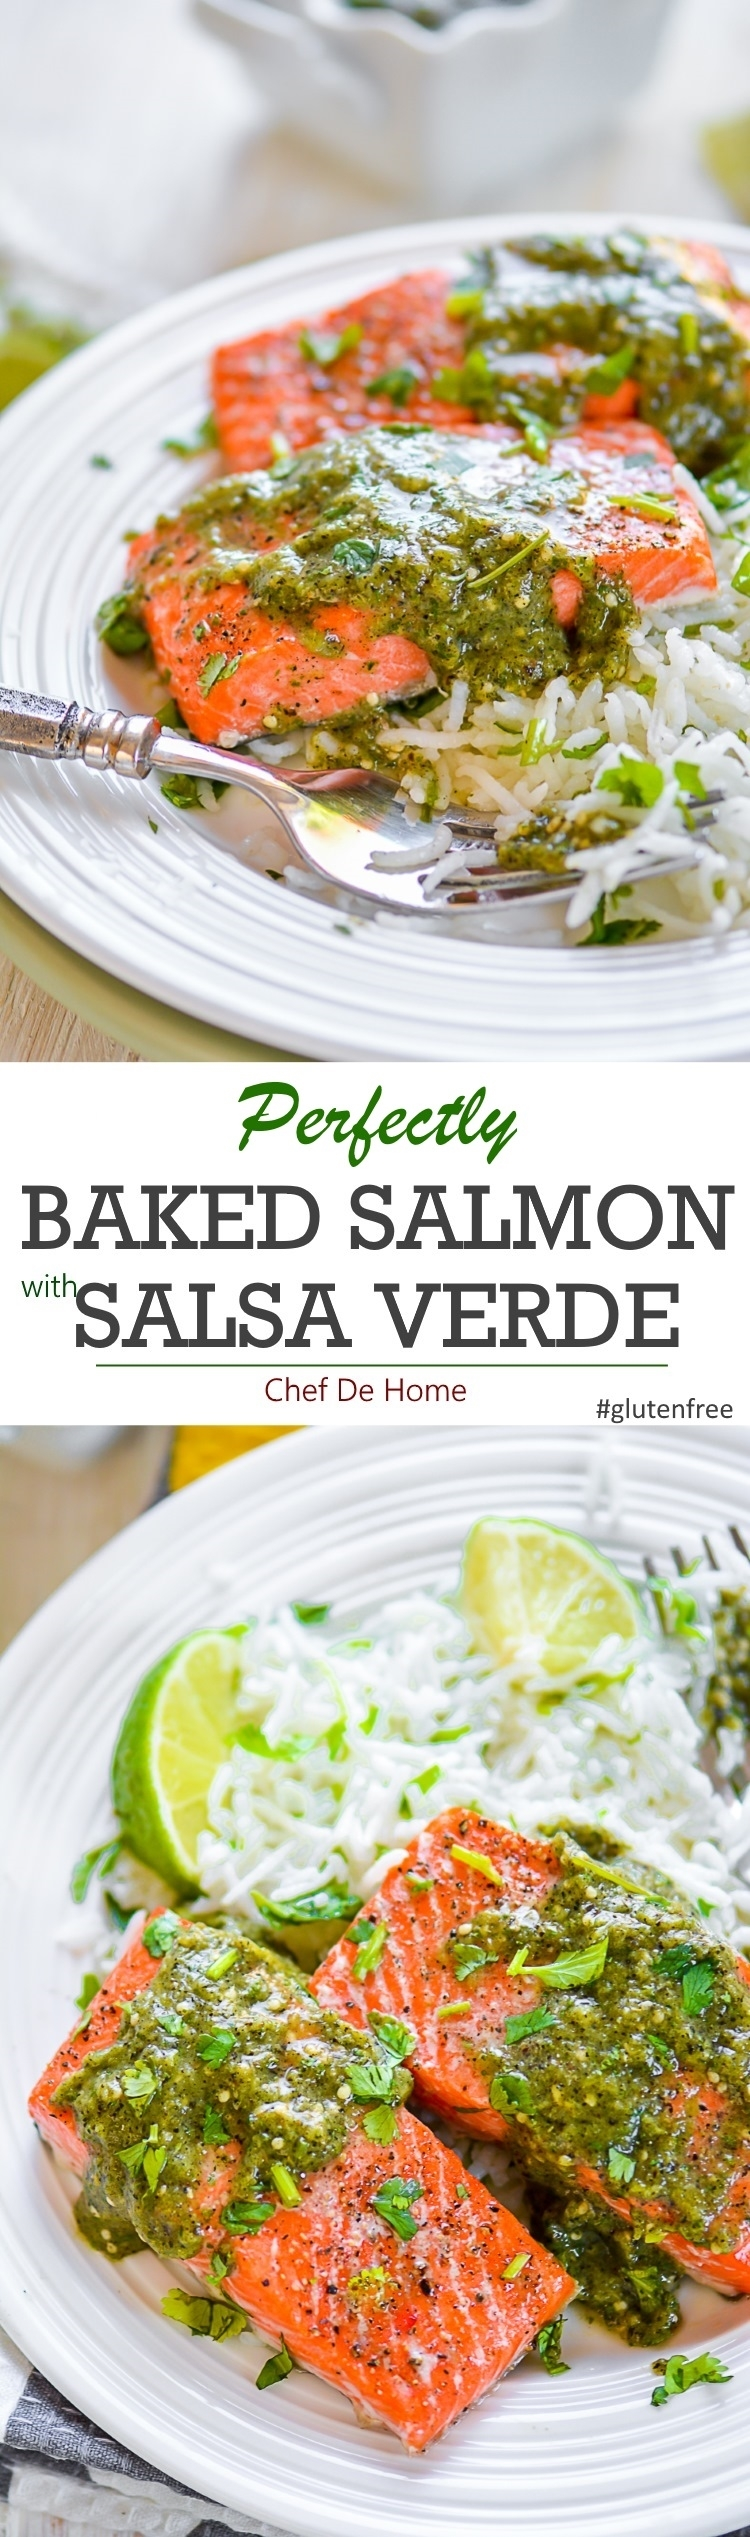 Perfectly baked salmon with roasted salsa verde and cilantro rice for dinner | chefdehome.com